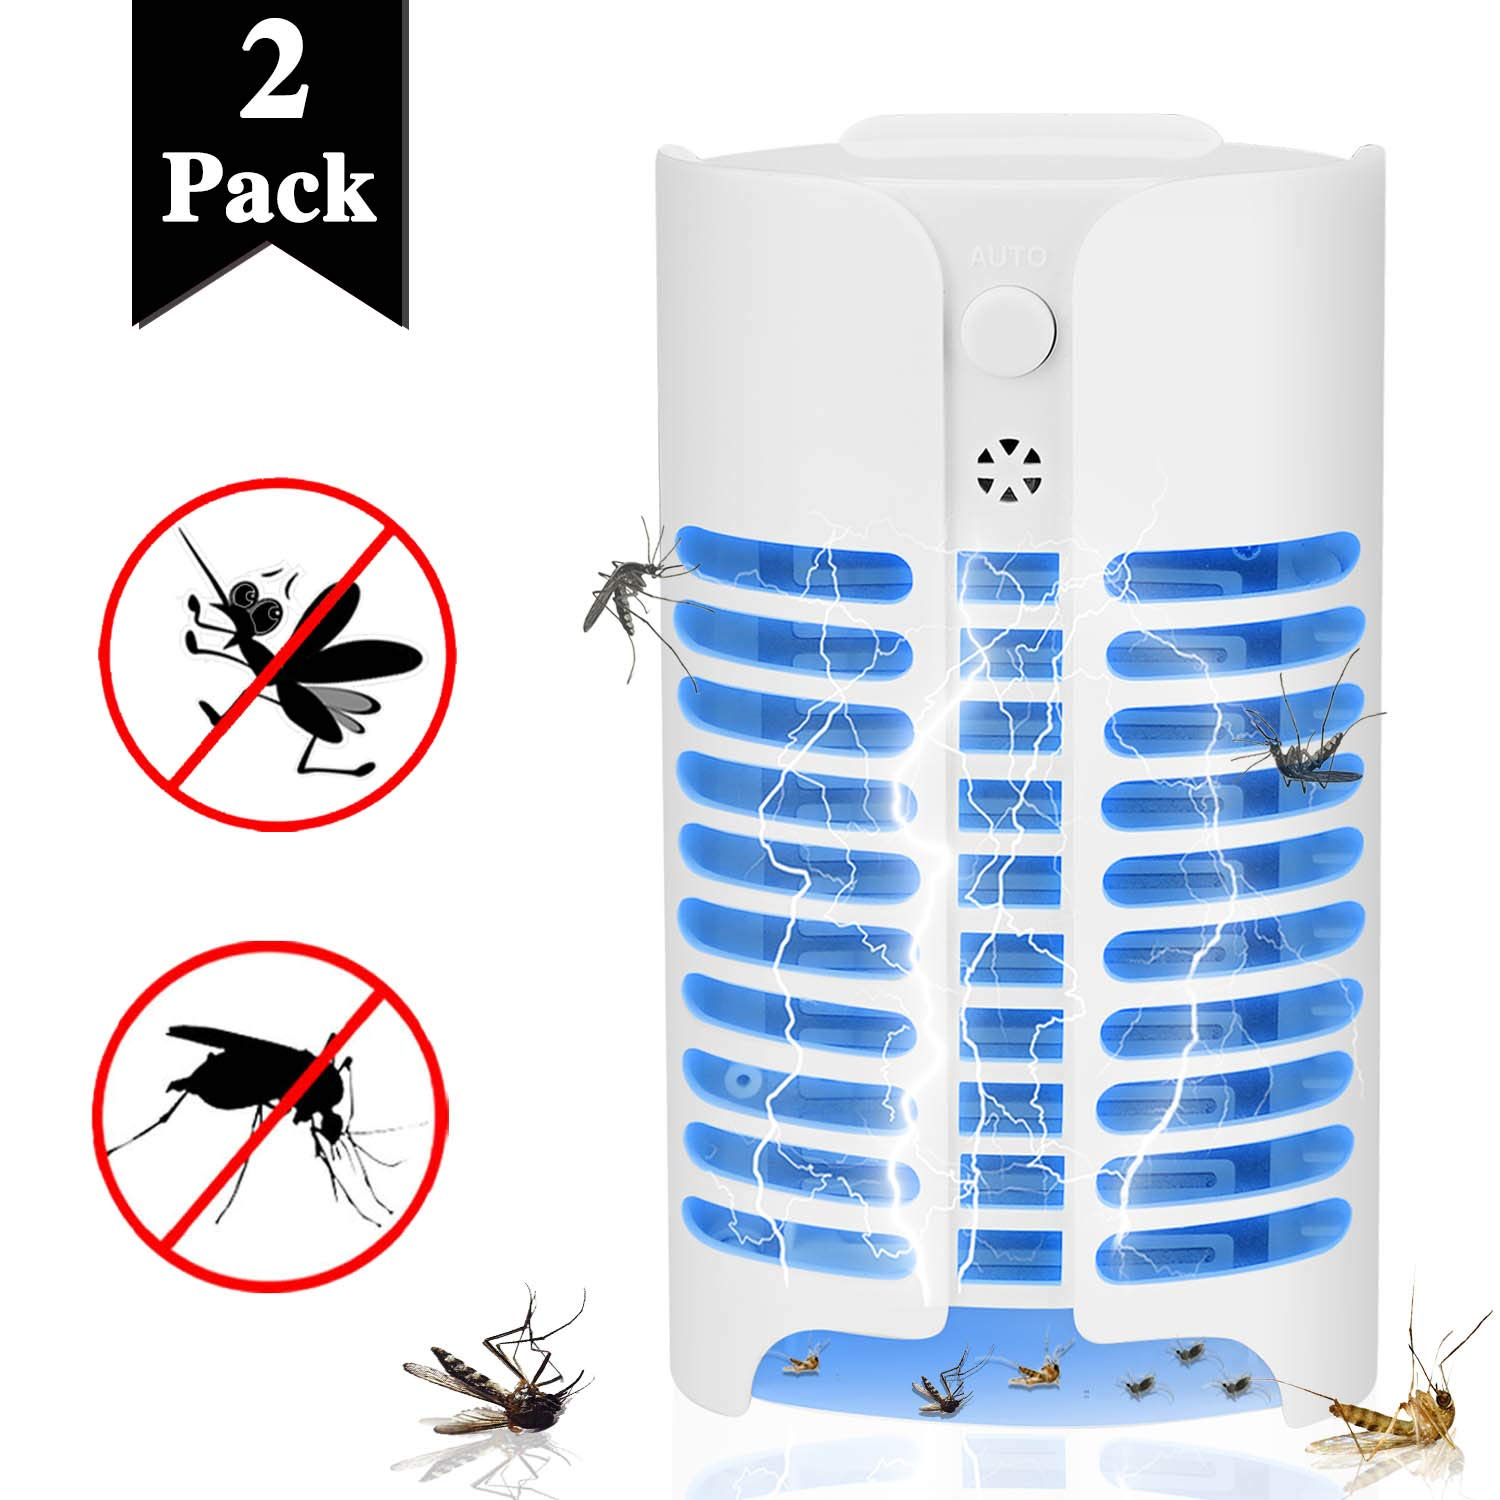 Aorecum Electric Indoor Bug Zapper,Mosquito Killer, Insect and Fly Zapper Catcher Killer Trap with UV Bug Light with Large Coverage 100% Safety for Home, Office and Patio Indoor use by Aorecum